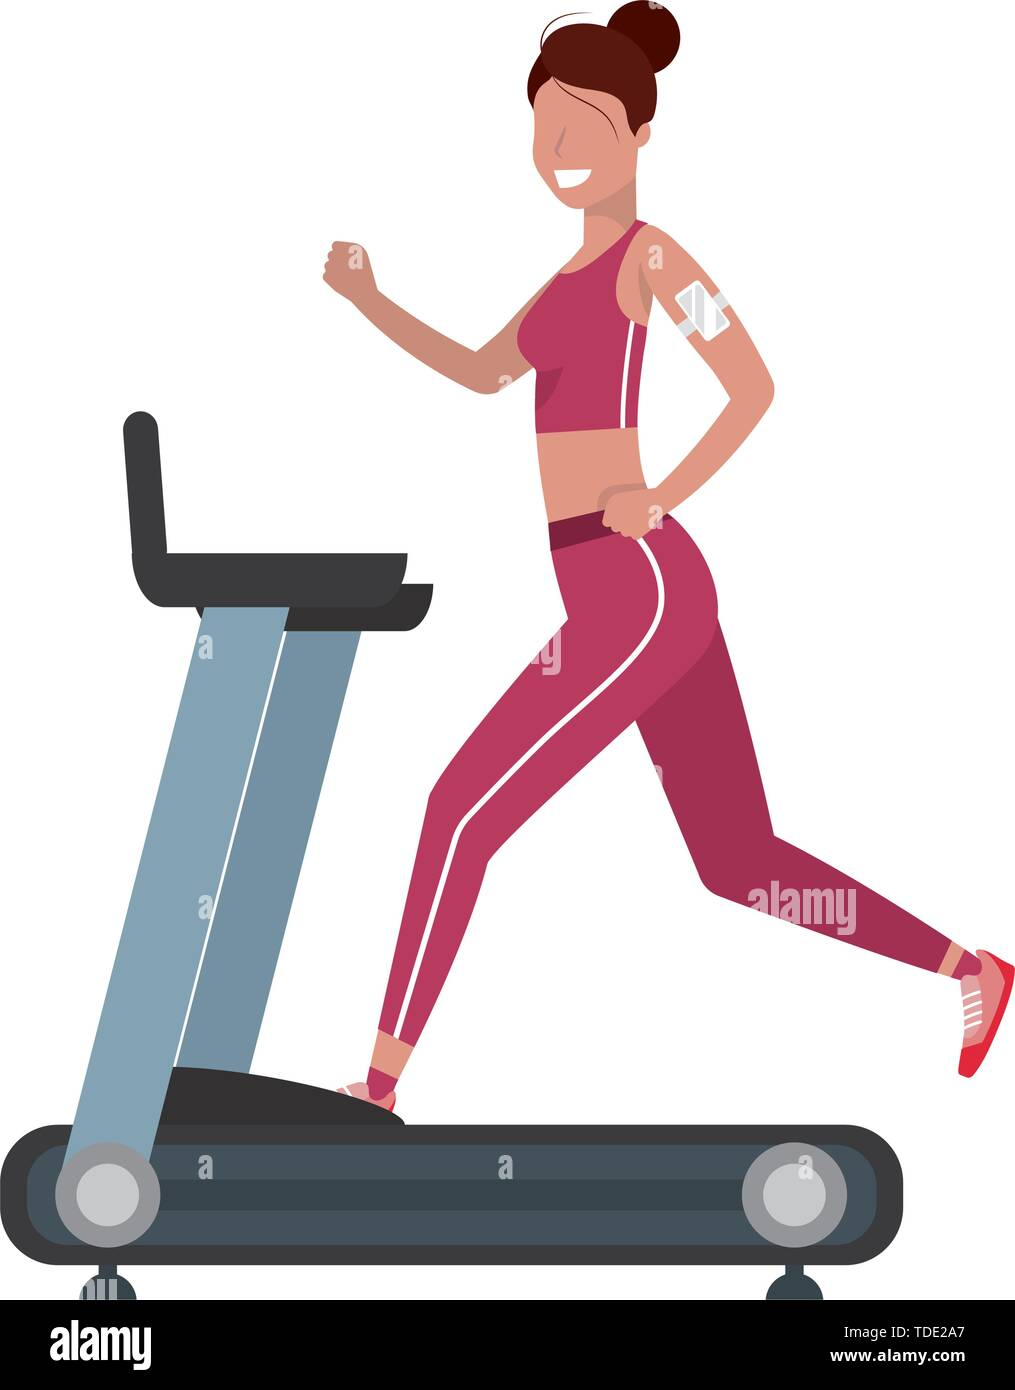 Fitness Exercise Woman Running Over Treadmill Workout Healthy Fit Lifestyle Cartoon Vector Illustration Graphic Design Stock Vector Image Art Alamy